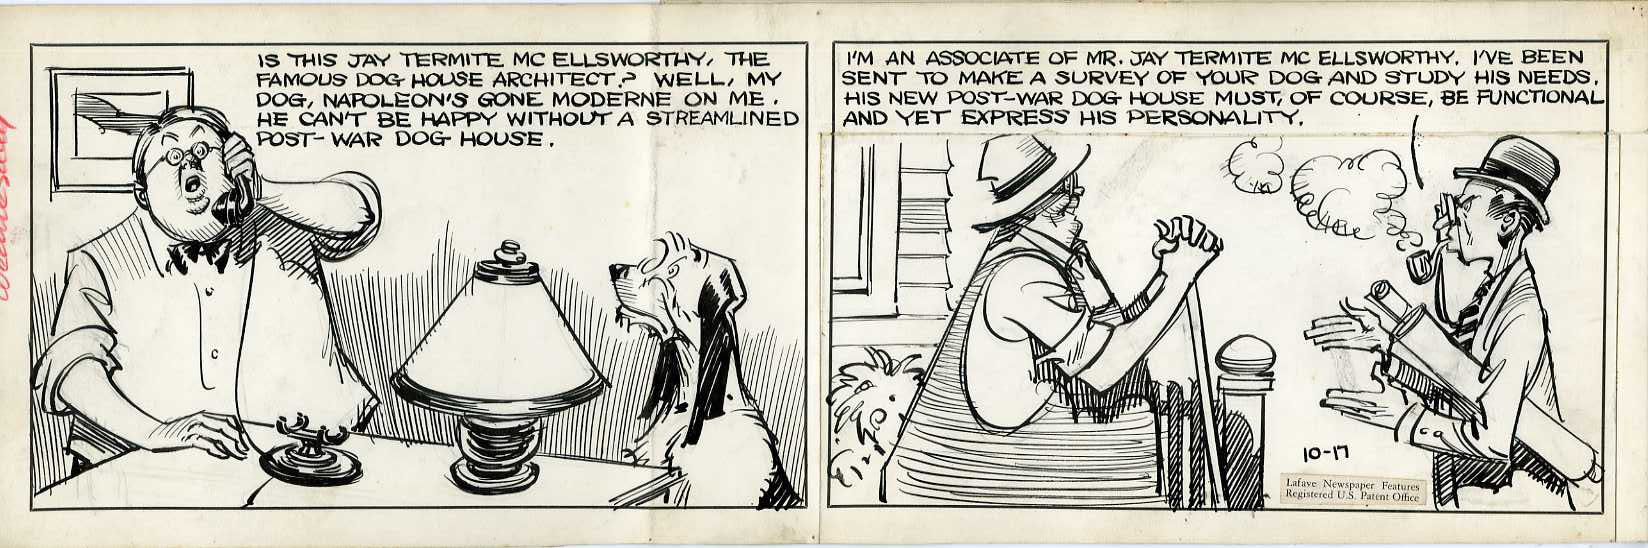 CLIFFORD McBRIDE - NAPOLEON DAILY STRIP ORIG ART 10-17 1940s / DOG ARCHITECT